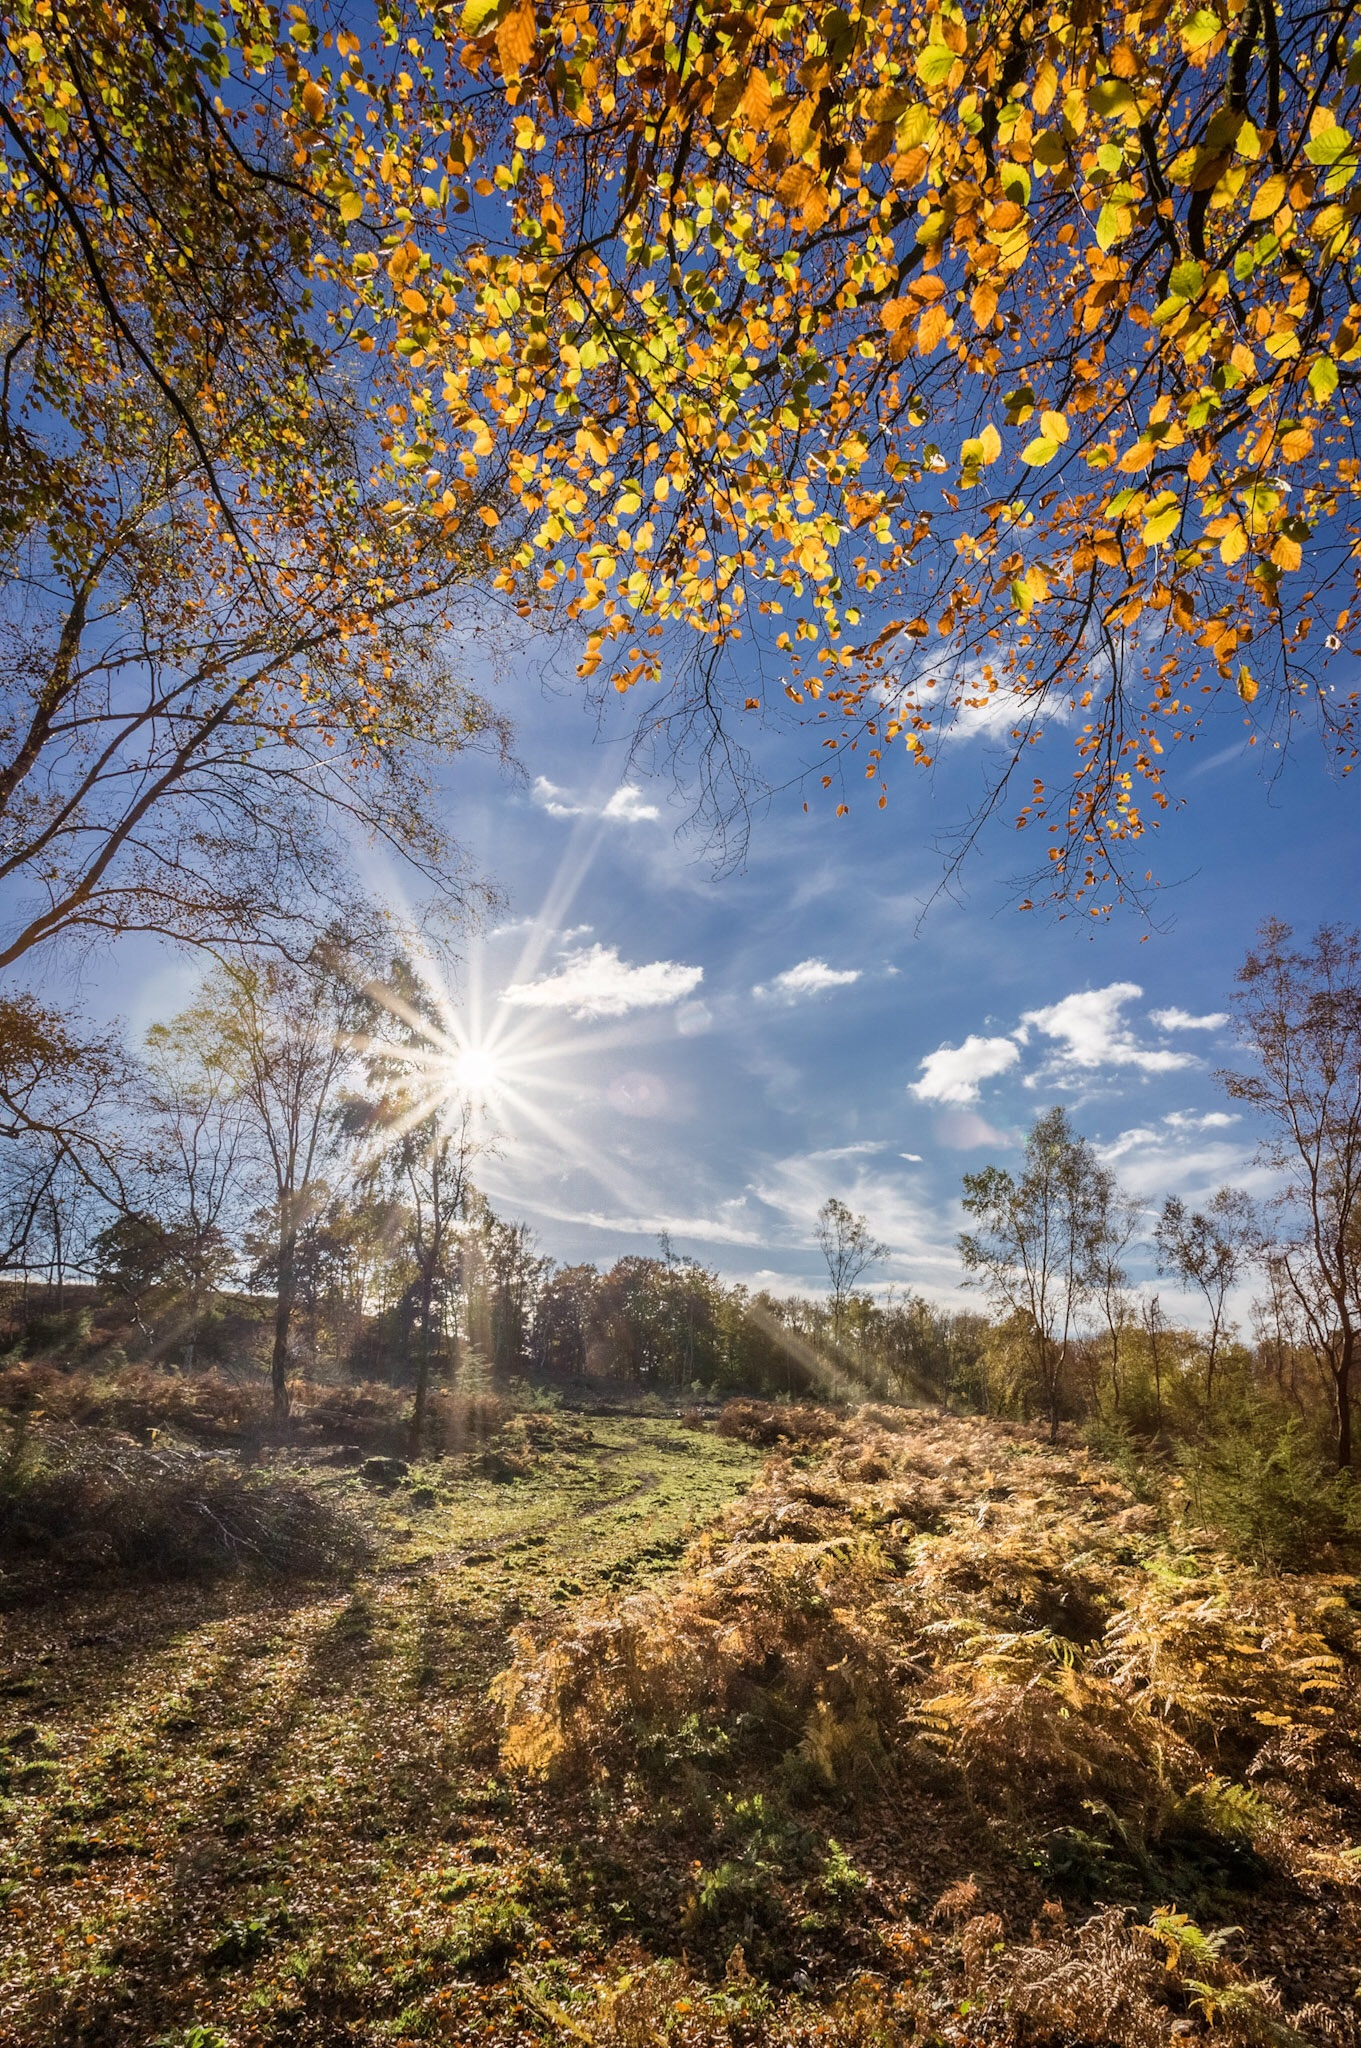 The original picture of the New Forest with all those lovely autumn colours